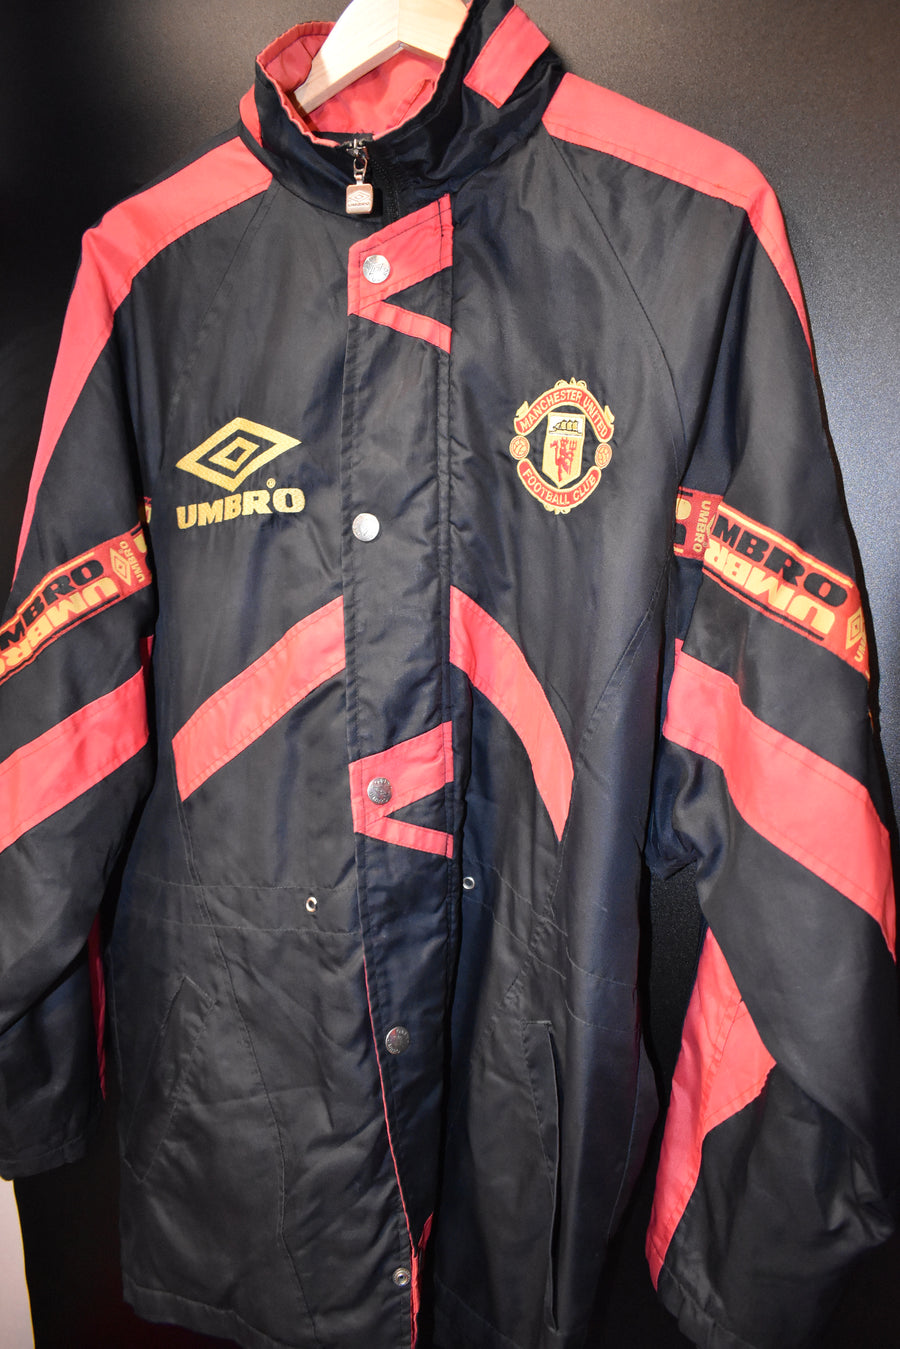 MANCHESTER UNITED 1994-1995 ORIGINAL JACKET Size L (EXCELLENT)